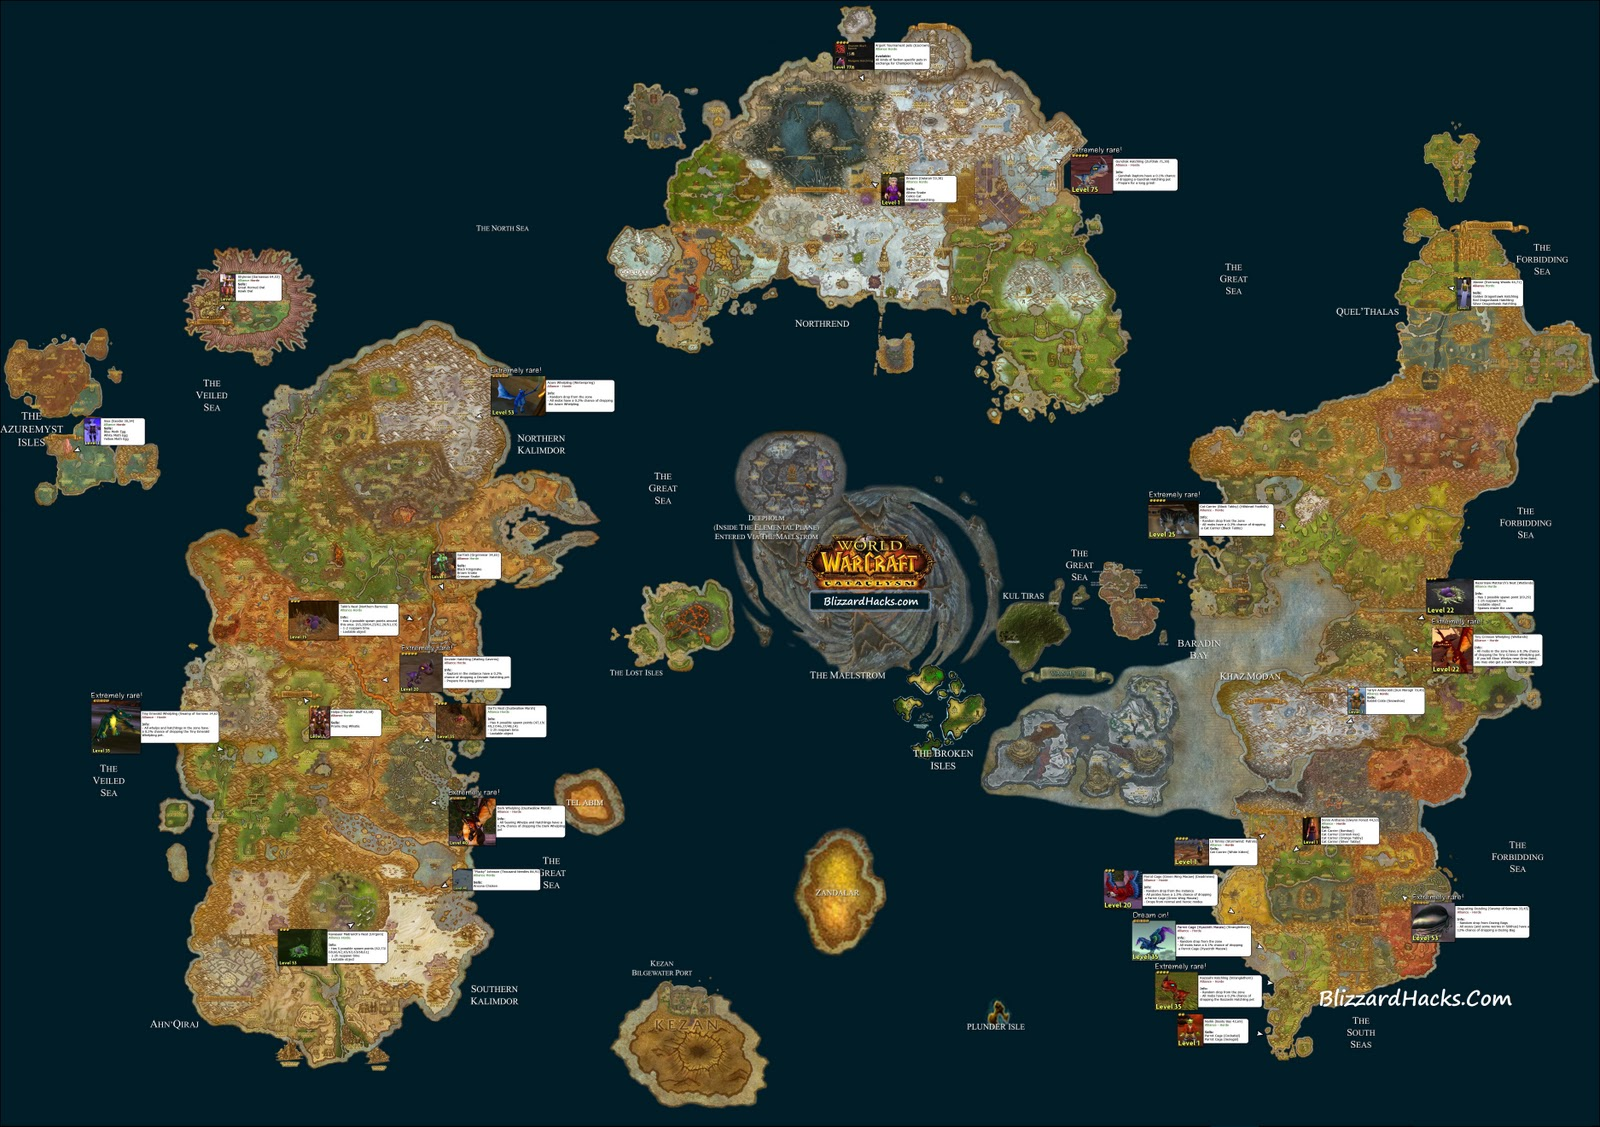 Map for warcraft companionmap1 levelflow wowmaptmor typhoon 863992de65c657d14b51ad72a6482528 1 world of warcraft map gumiabroncs Gallery